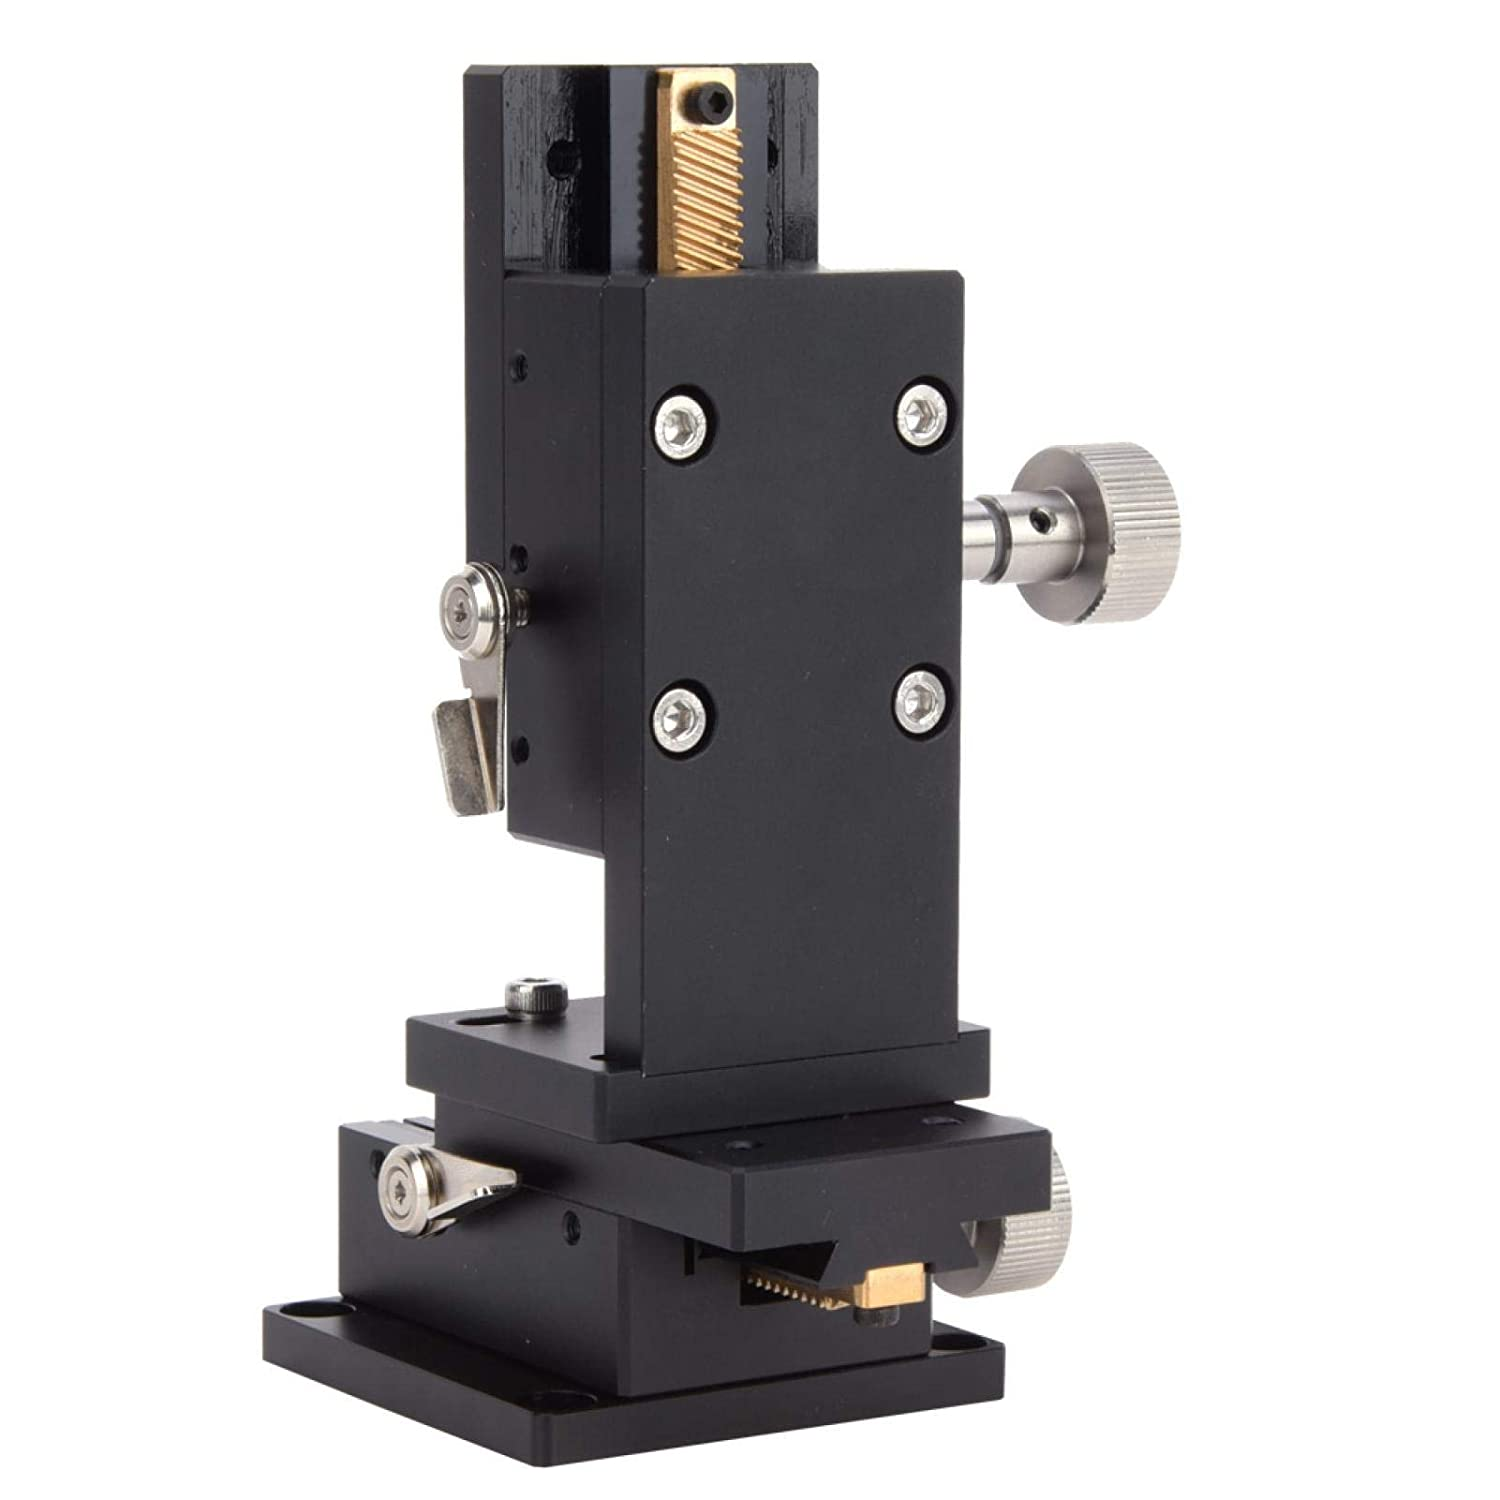 Sturdy Safe to Protect Easy to Install Manual Trimming Table Manual Trimming Platform for Optical Instruments Measuring Devices